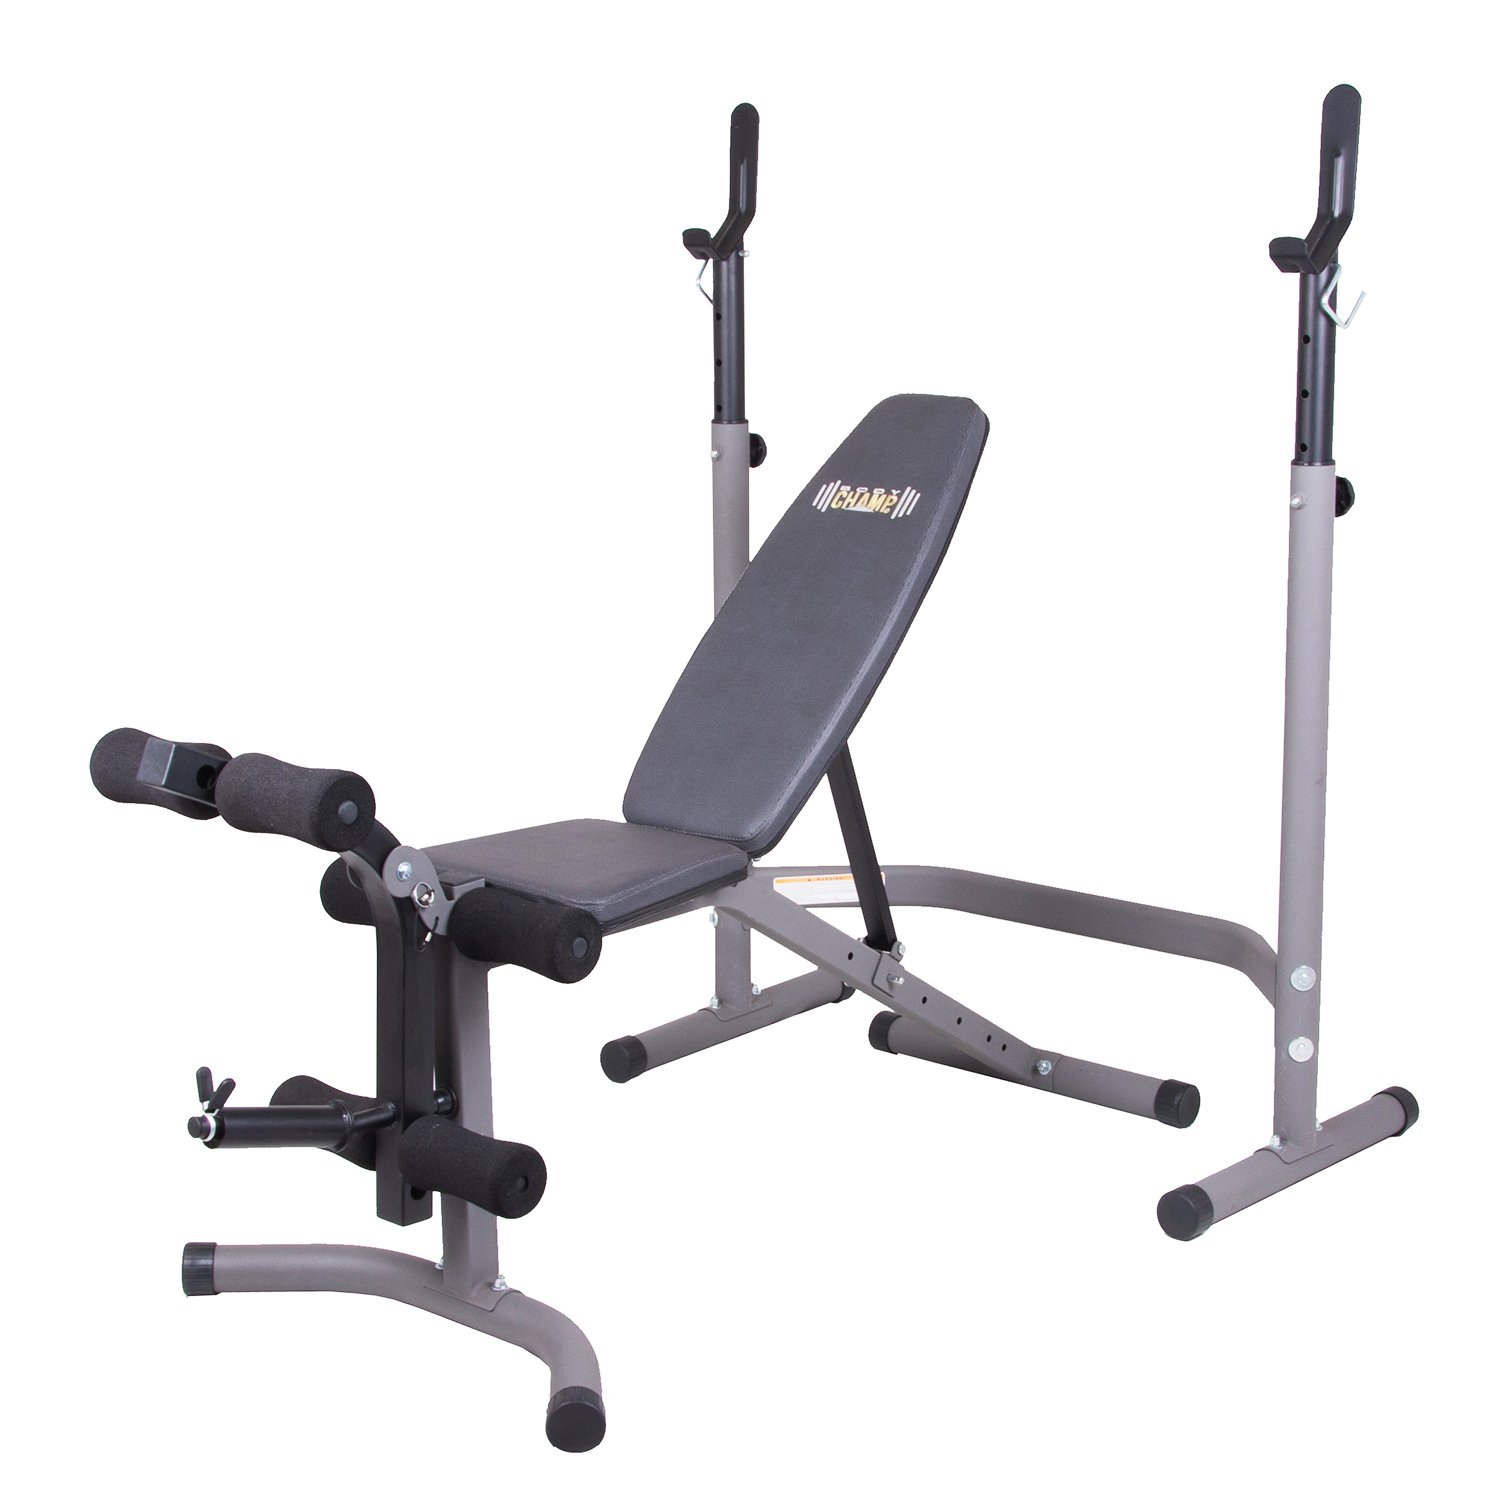 Body Champ BCB3780 Olympic Weight Bench with Leg Extension Curl Lift Developer Attachment / 2 piece Combo Bench and Squat Rack Stand by Body Champ